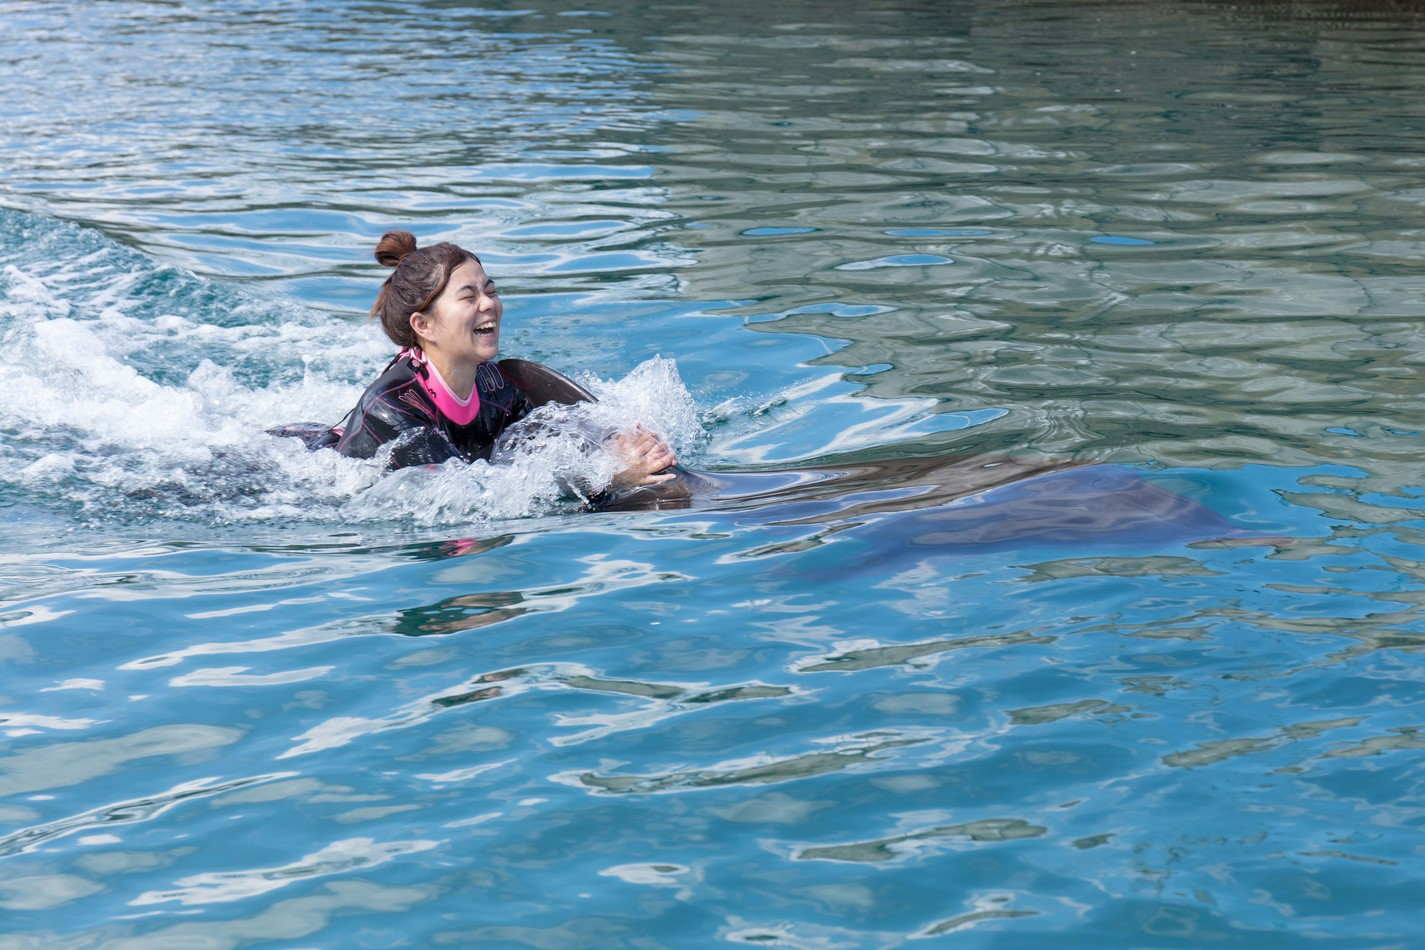 MUROTO DOLPHIN CENTER